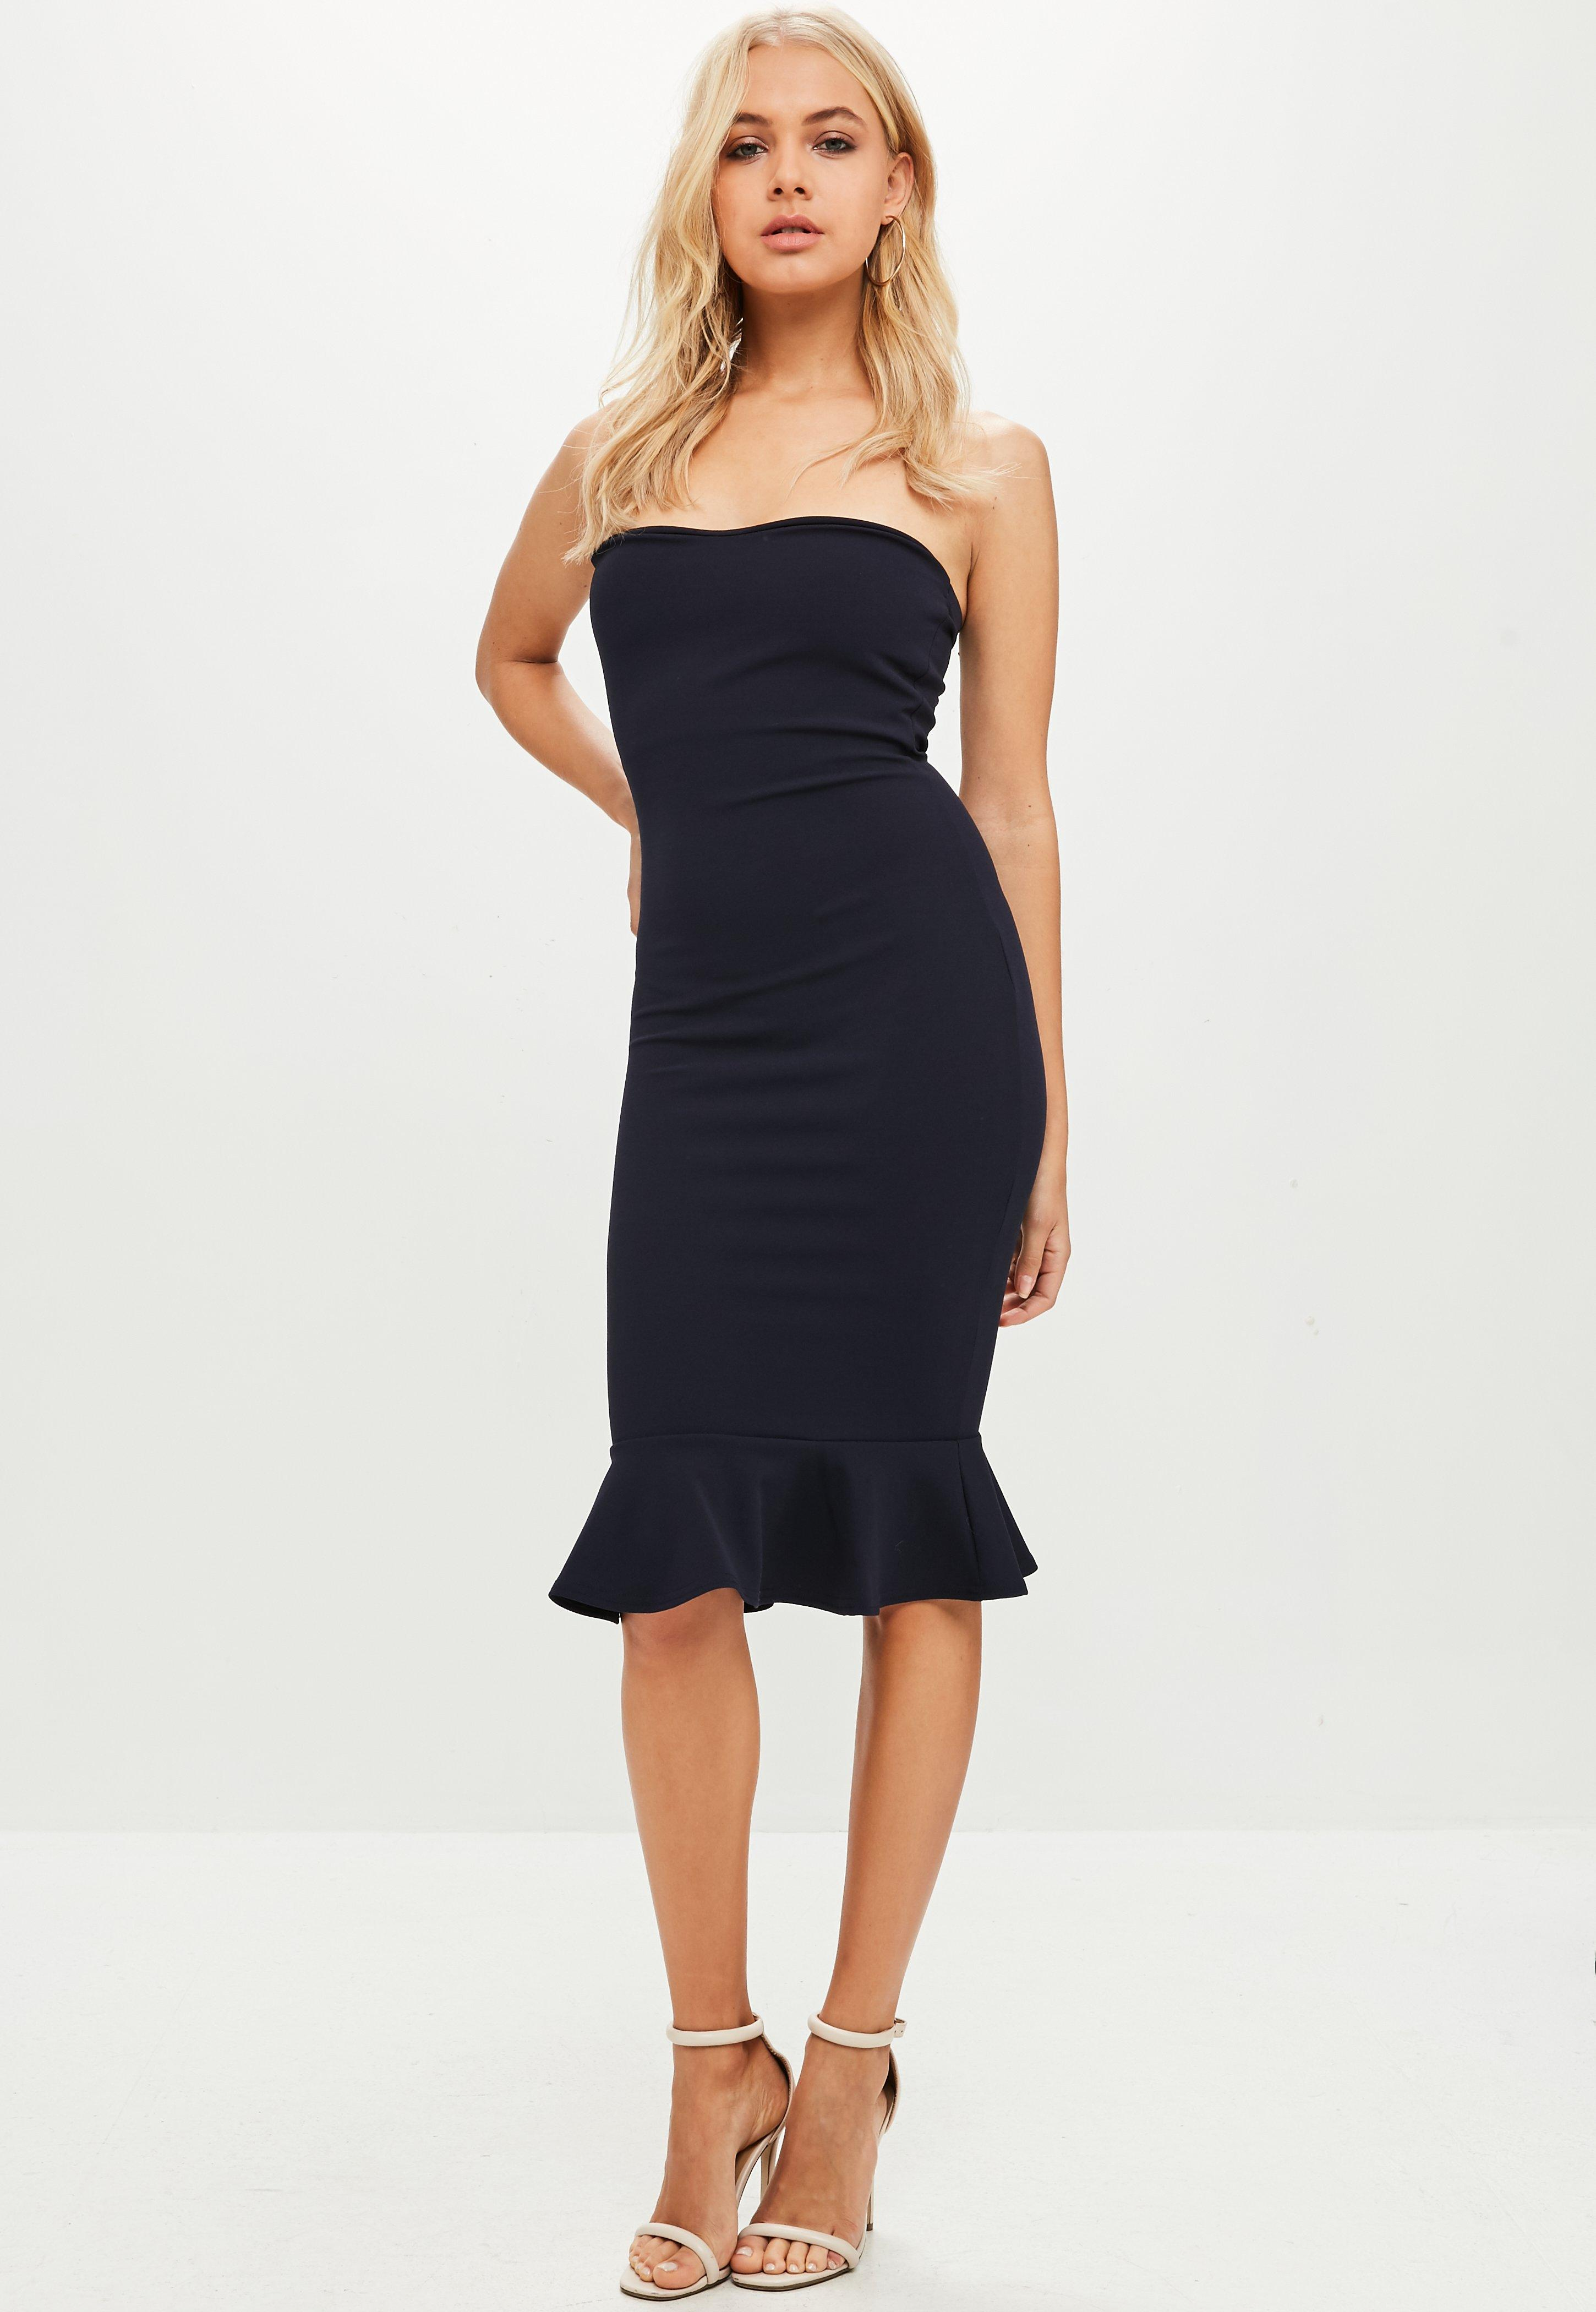 Wedding guest dresses dresses for weddings missguided ombrellifo Image collections